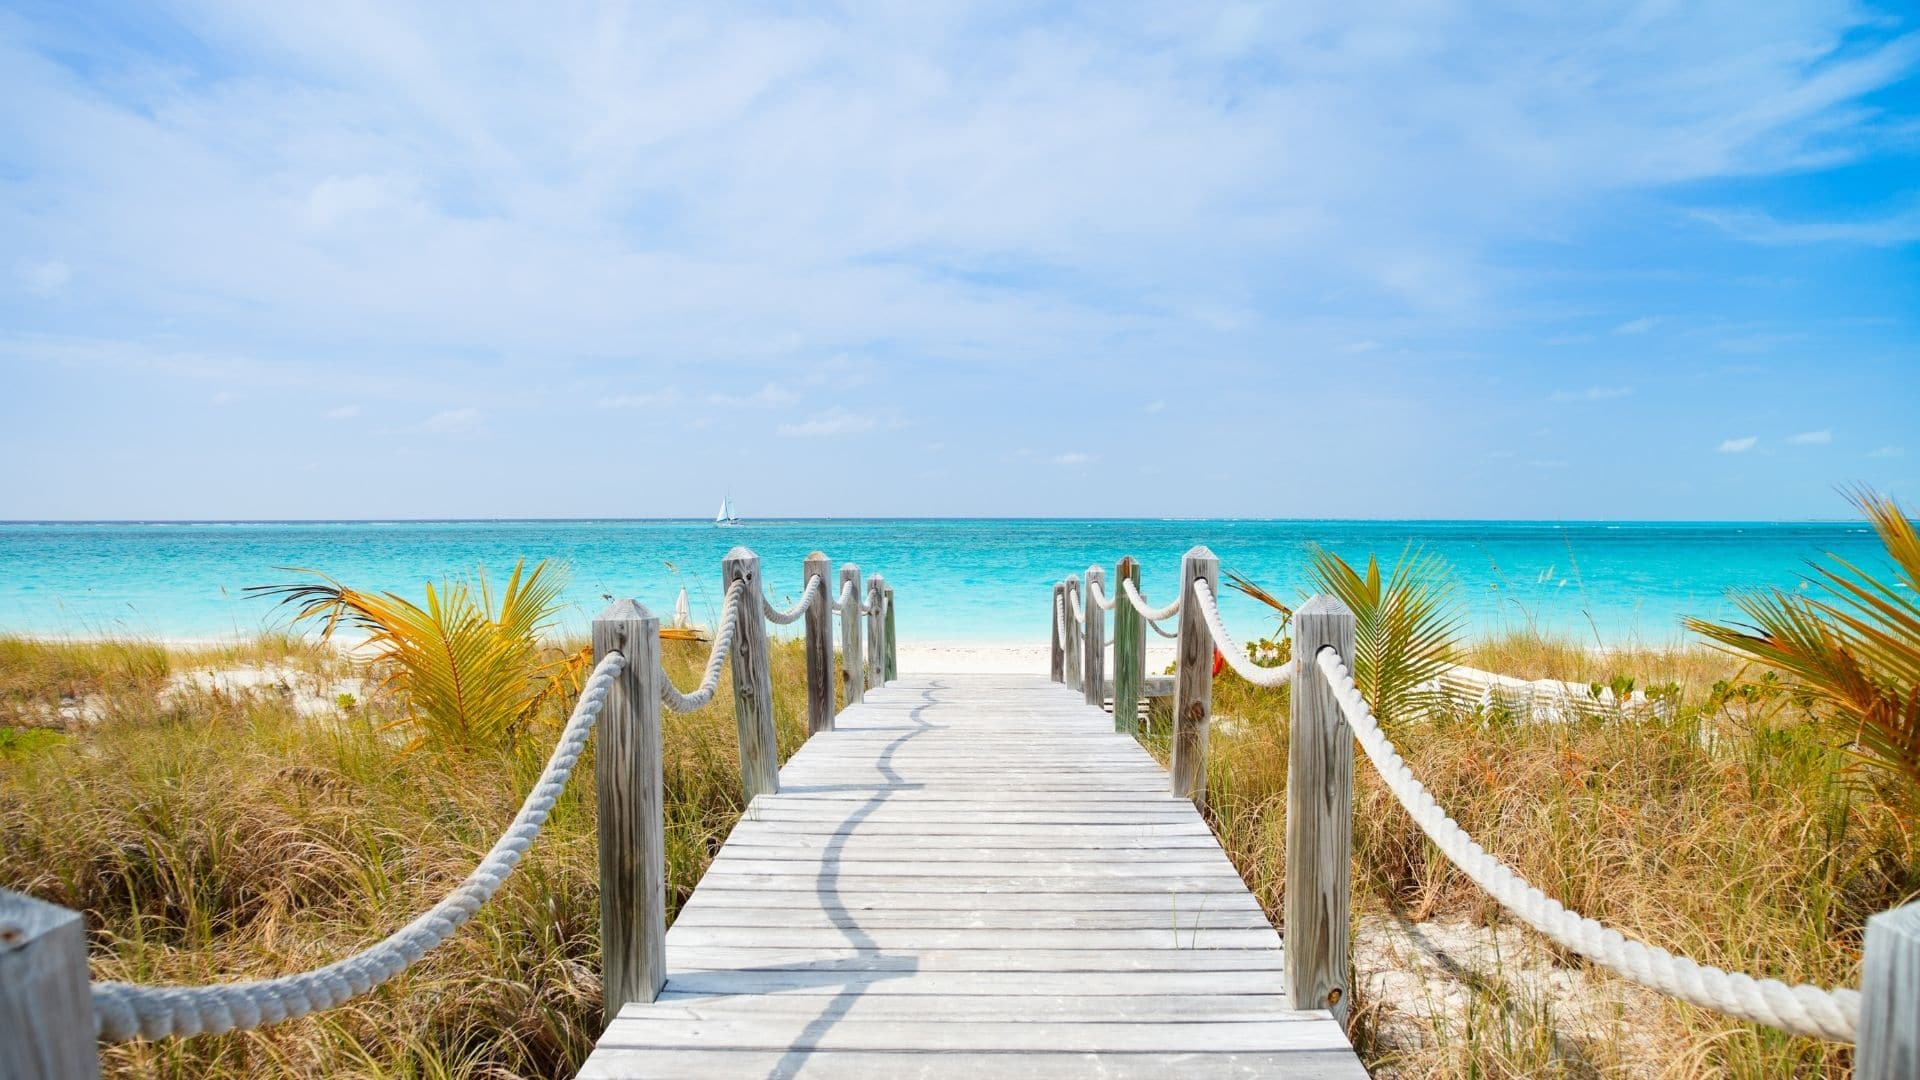 Cheap traveling places in the Caribbean Turks and Caicos